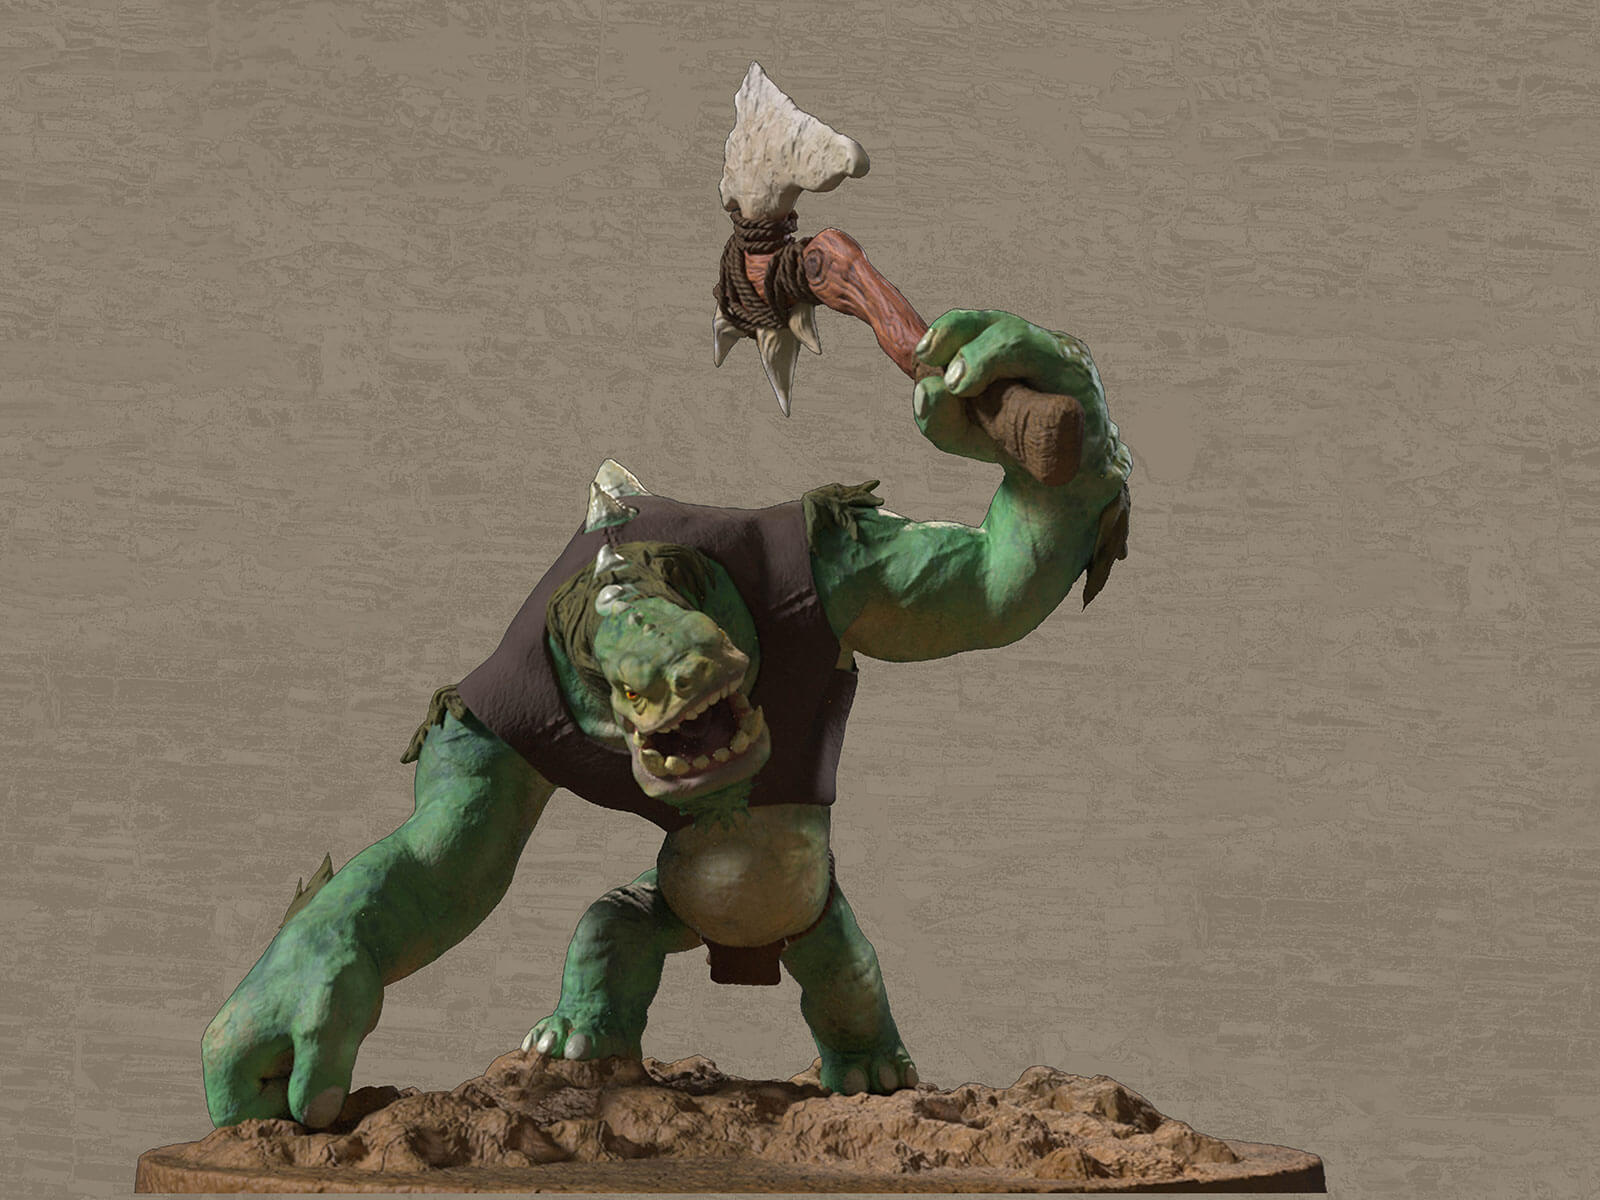 A green troll-like creature wearing a brown tunic raises a crude, wood and stone ax above its head.